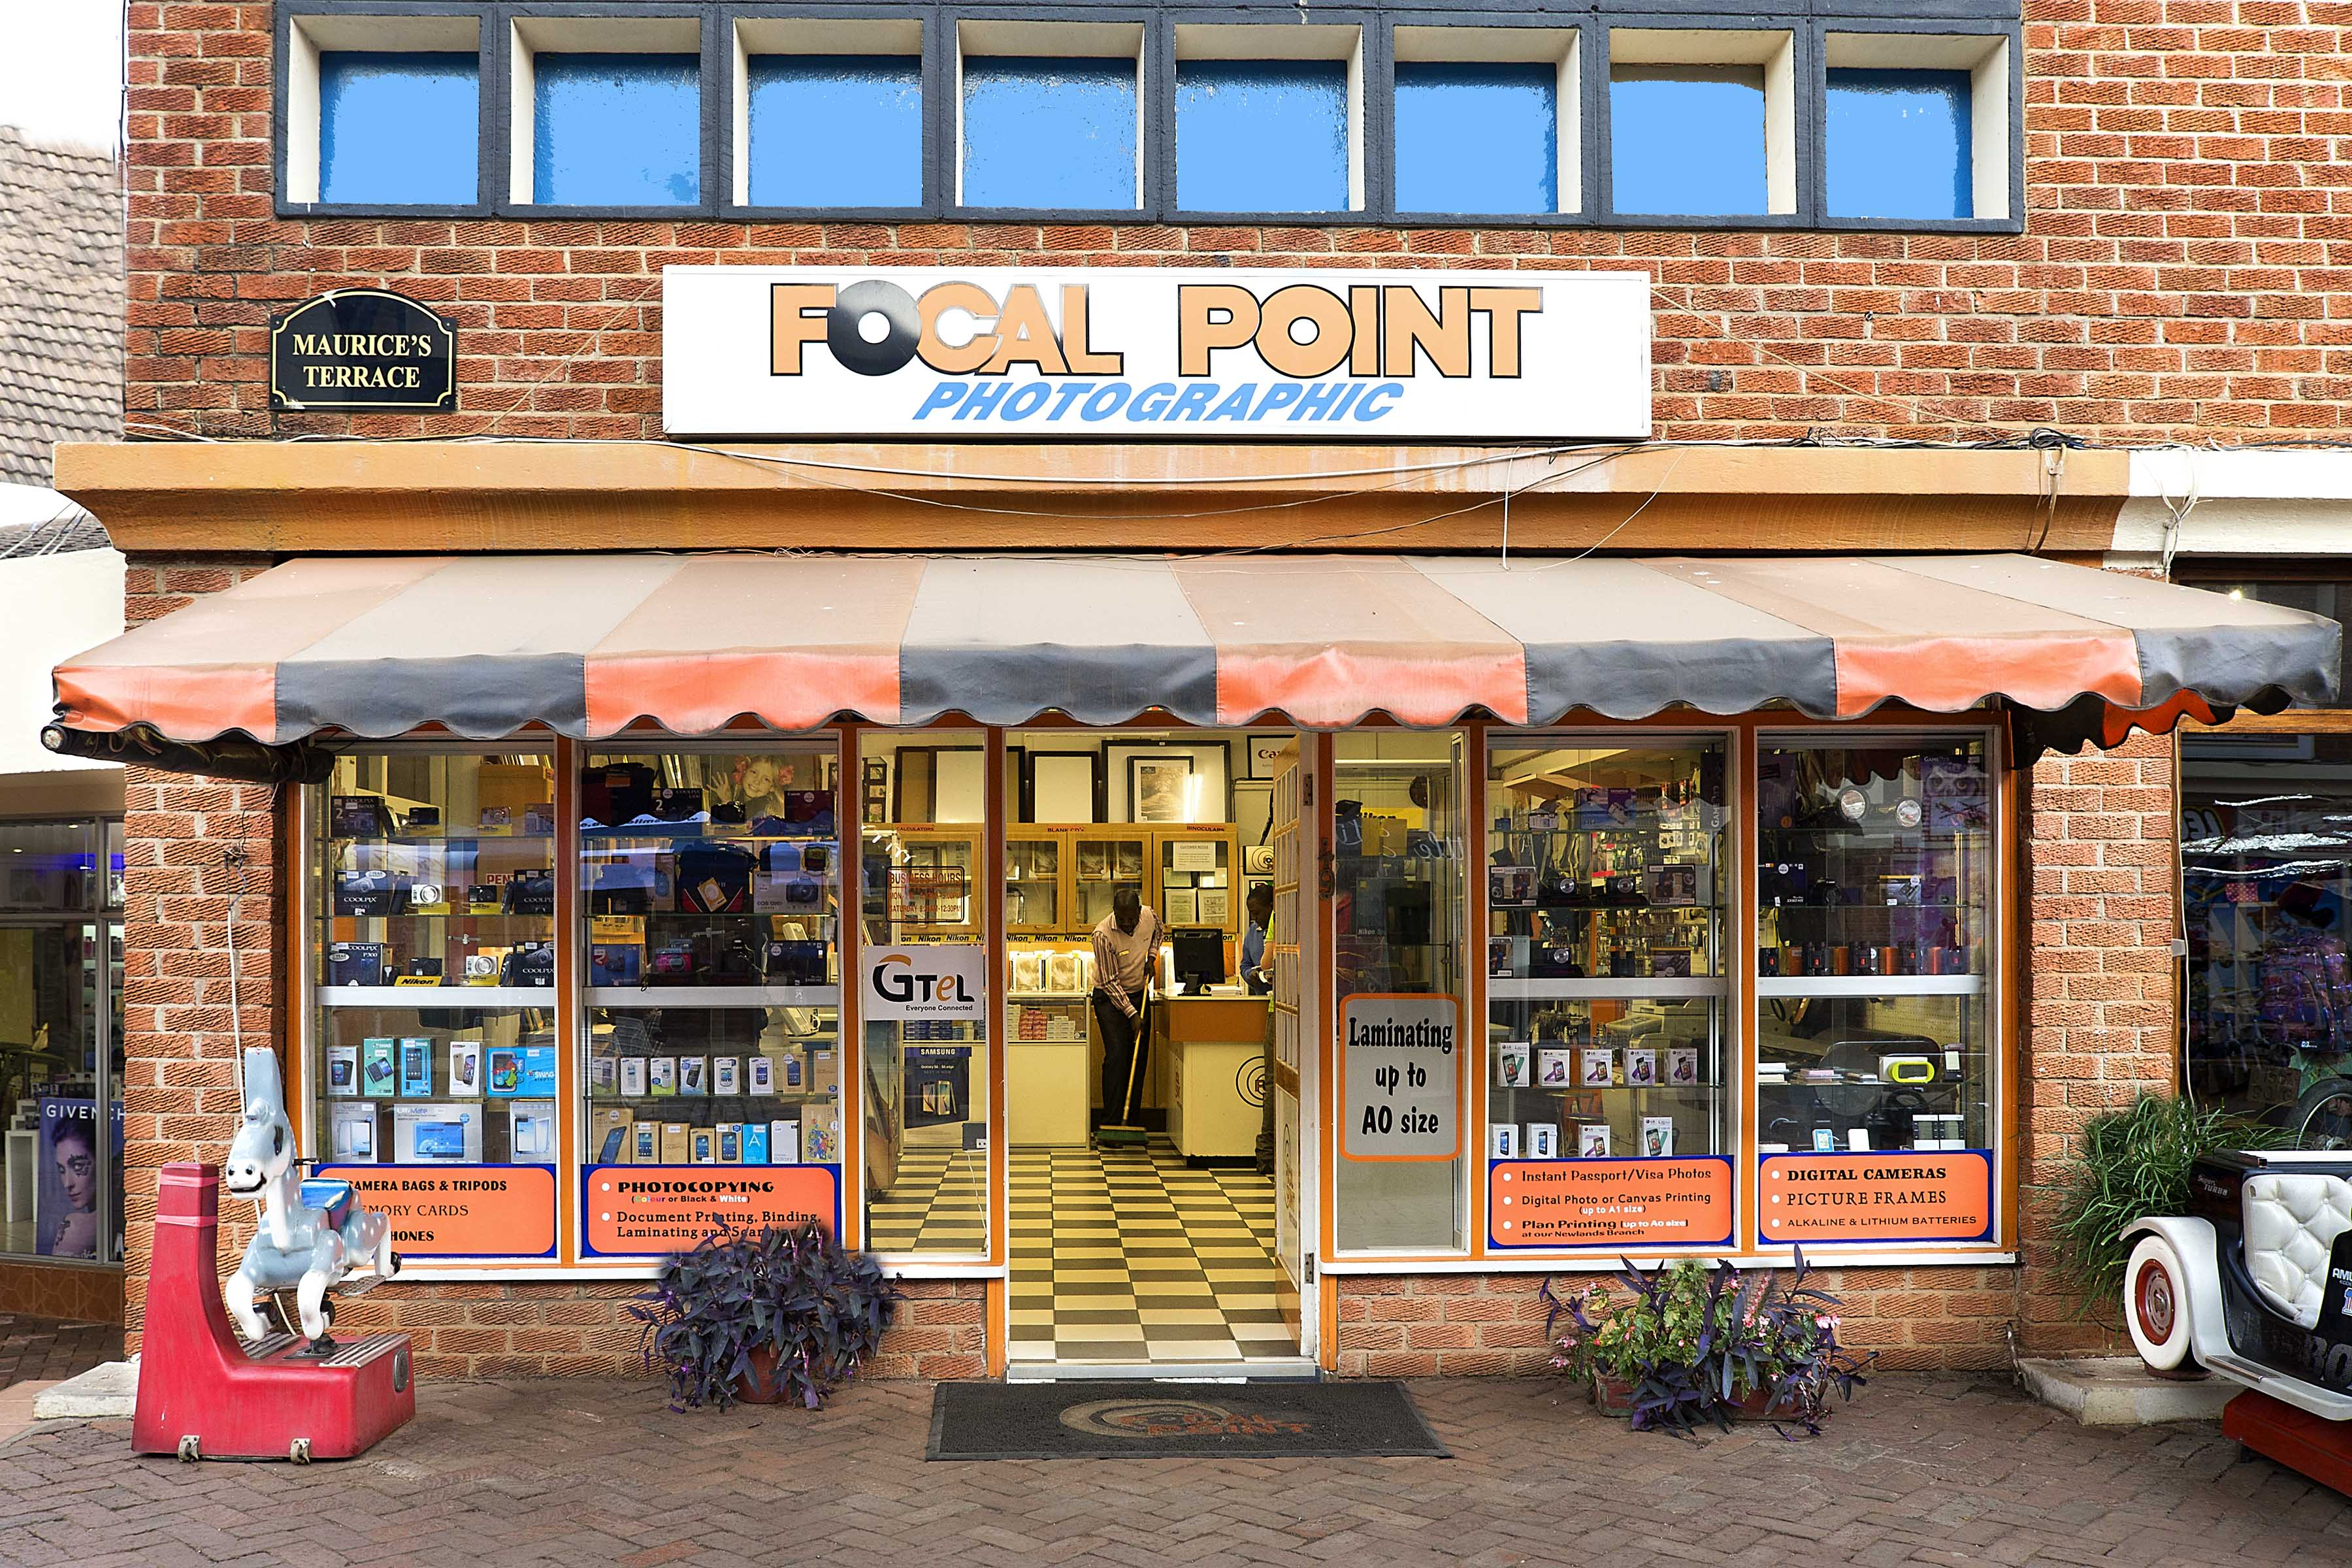 Focal Point Photographic